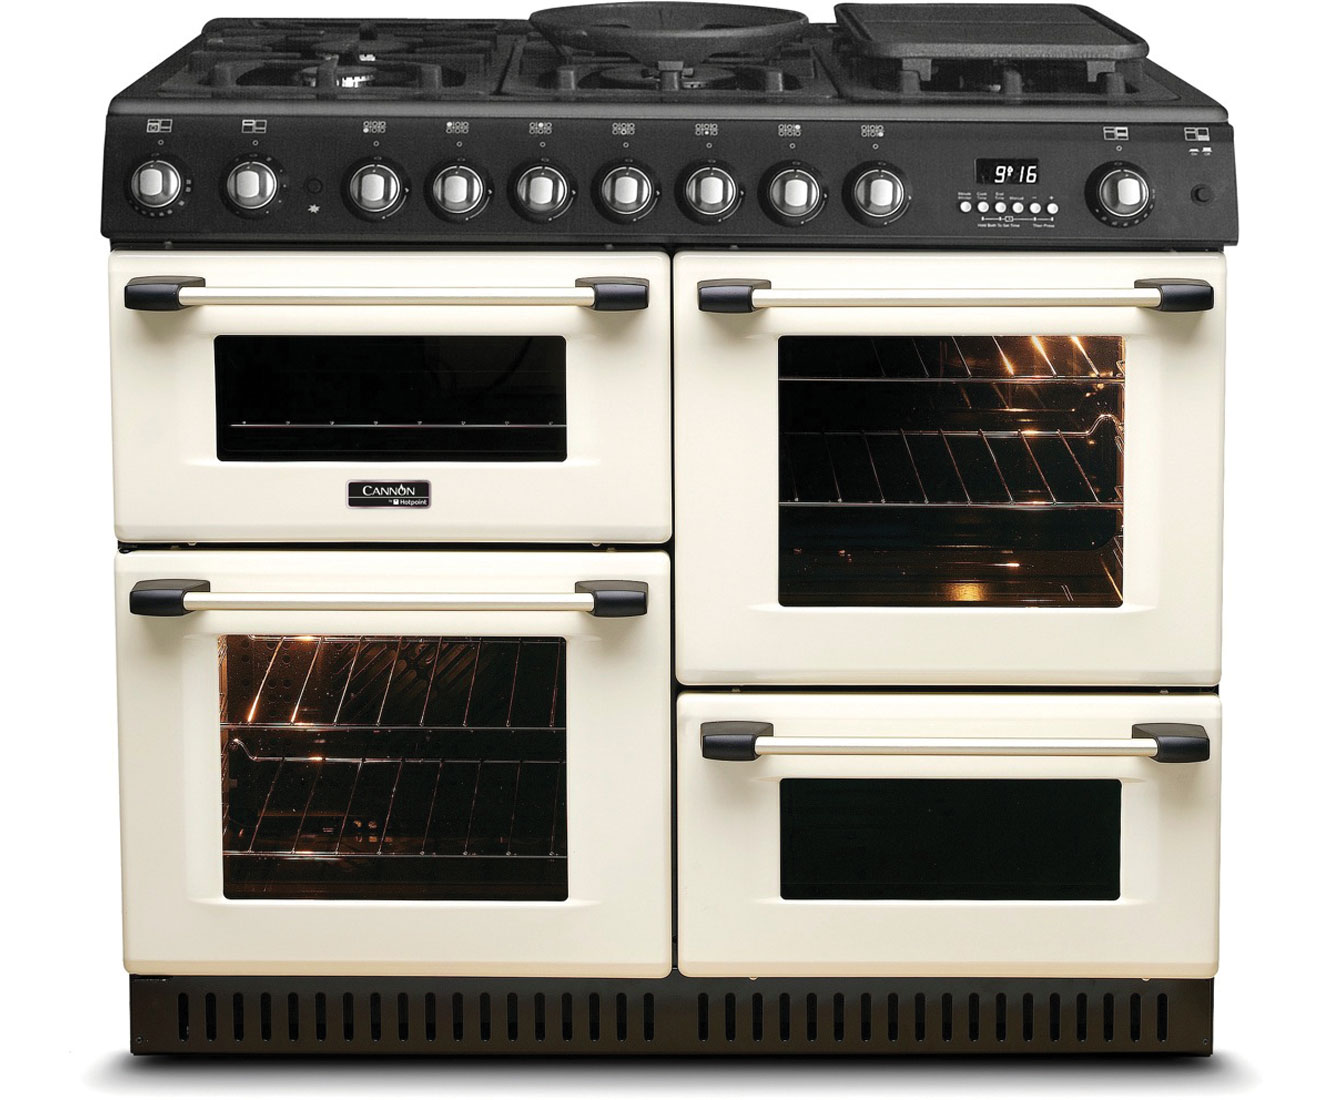 Cannon by Hotpoint CH10755GFS Free Standing Range Cooker in Cream